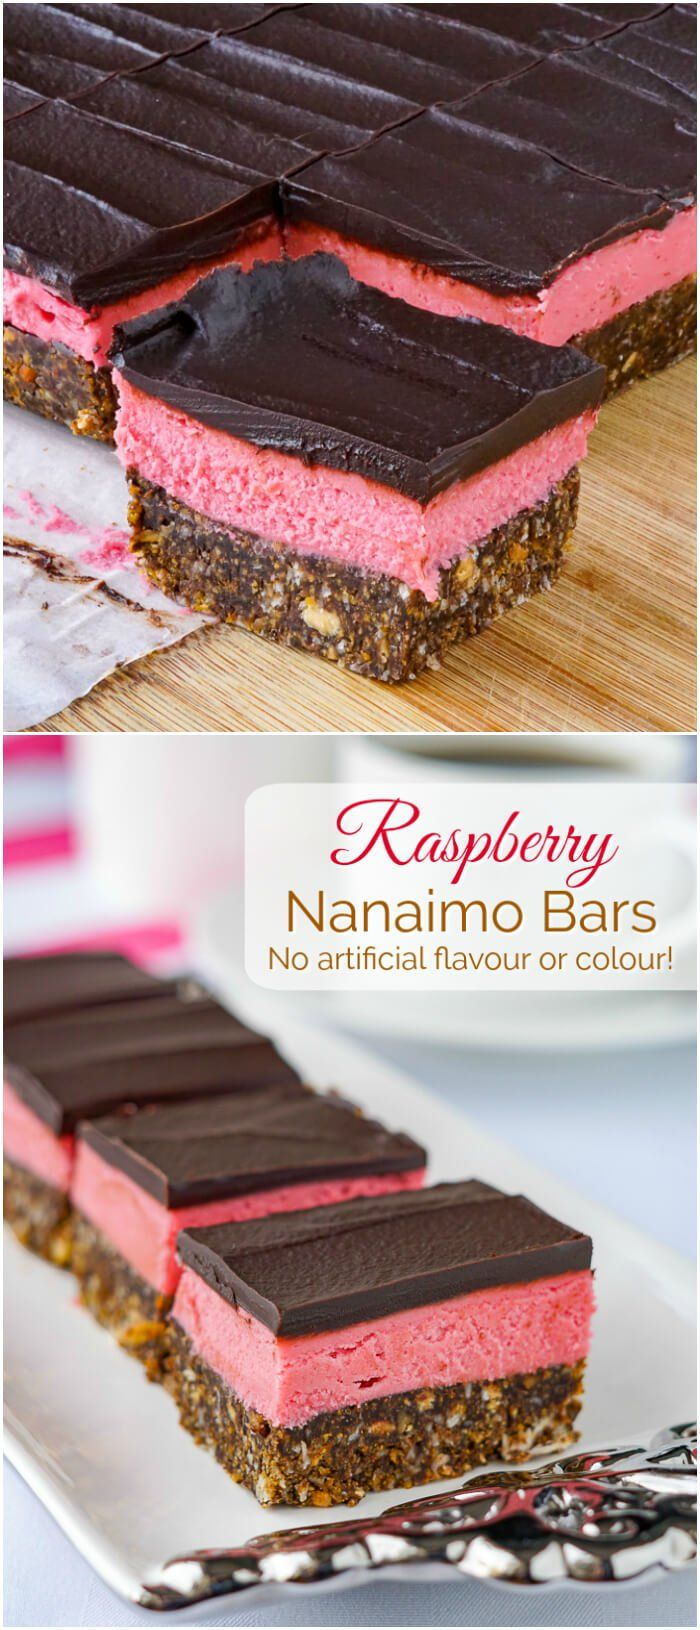 Raspberry Nanaimo Bars, a new twist on a classic Canadian no-bake treat!